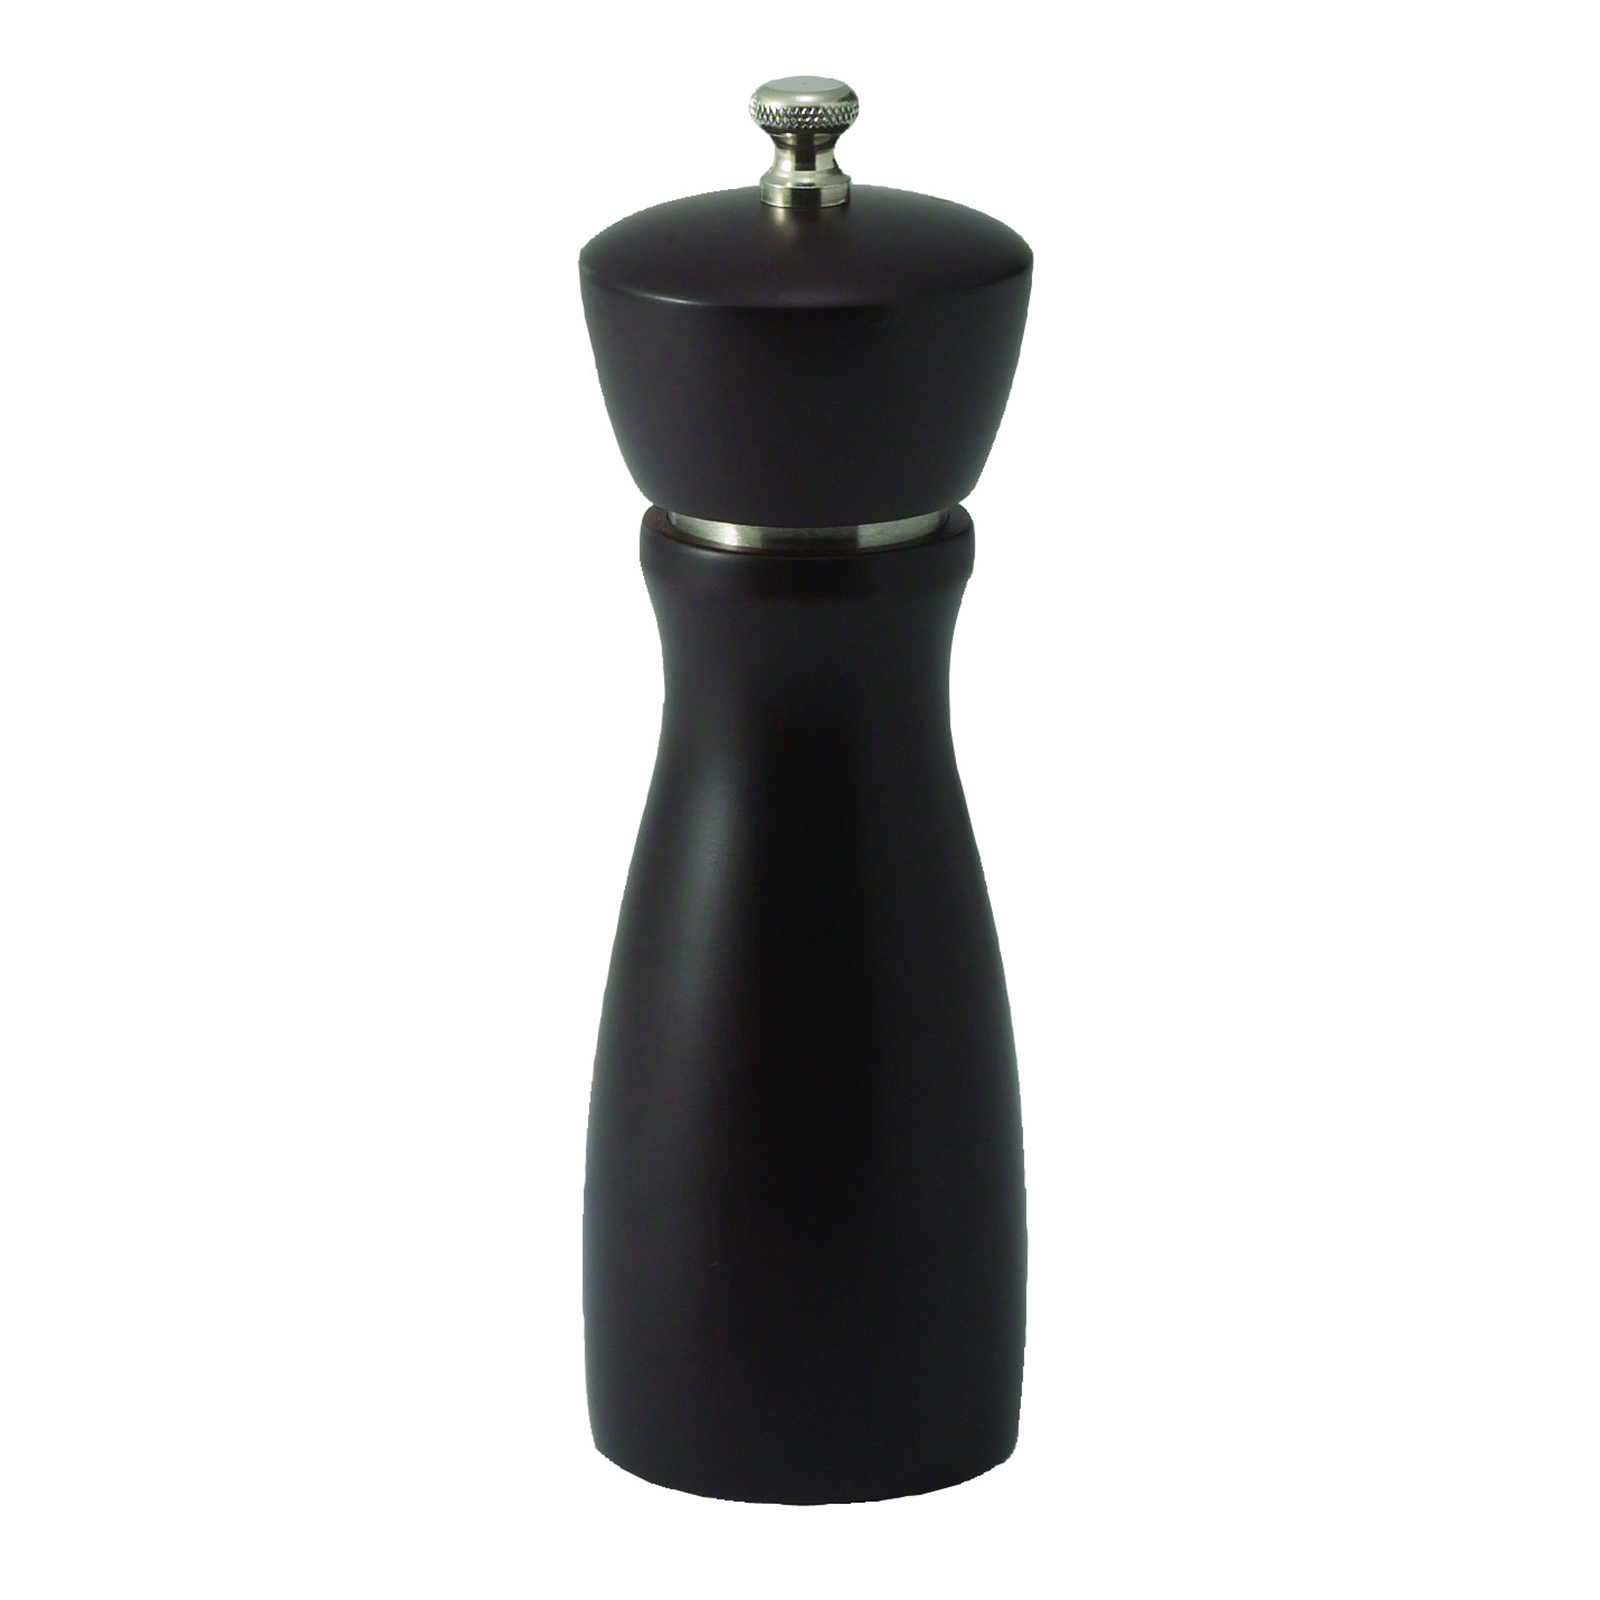 Winco WPM-6CD pepper mill